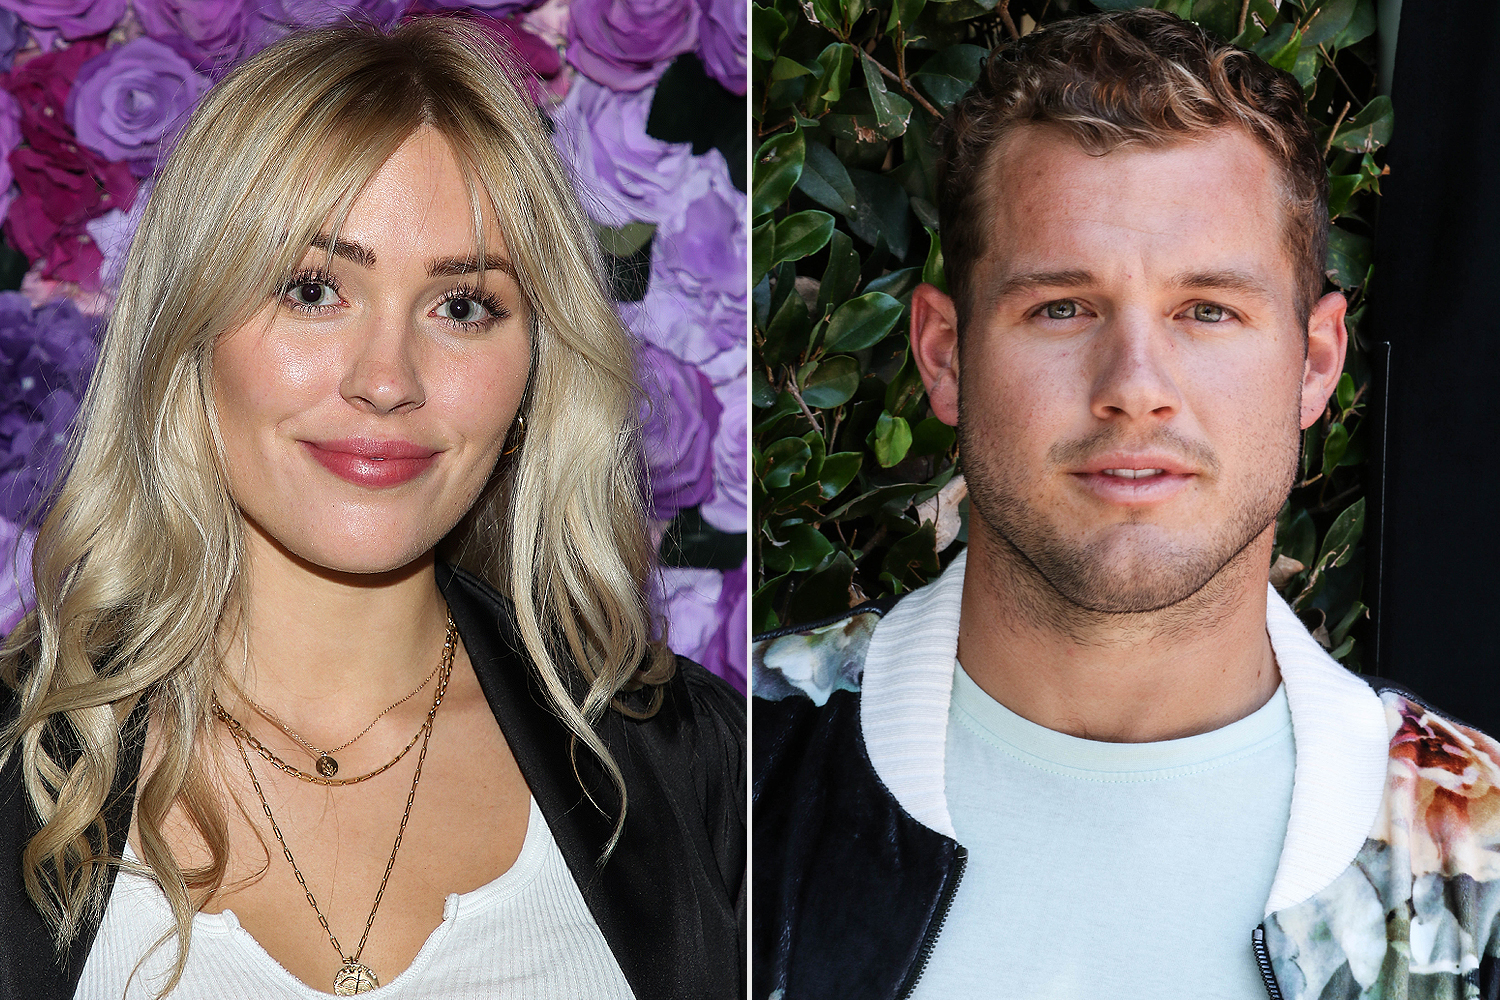 Petition Against Colton Underwood's Upcoming Netflix Series Receives More Than 25,000 Signatures